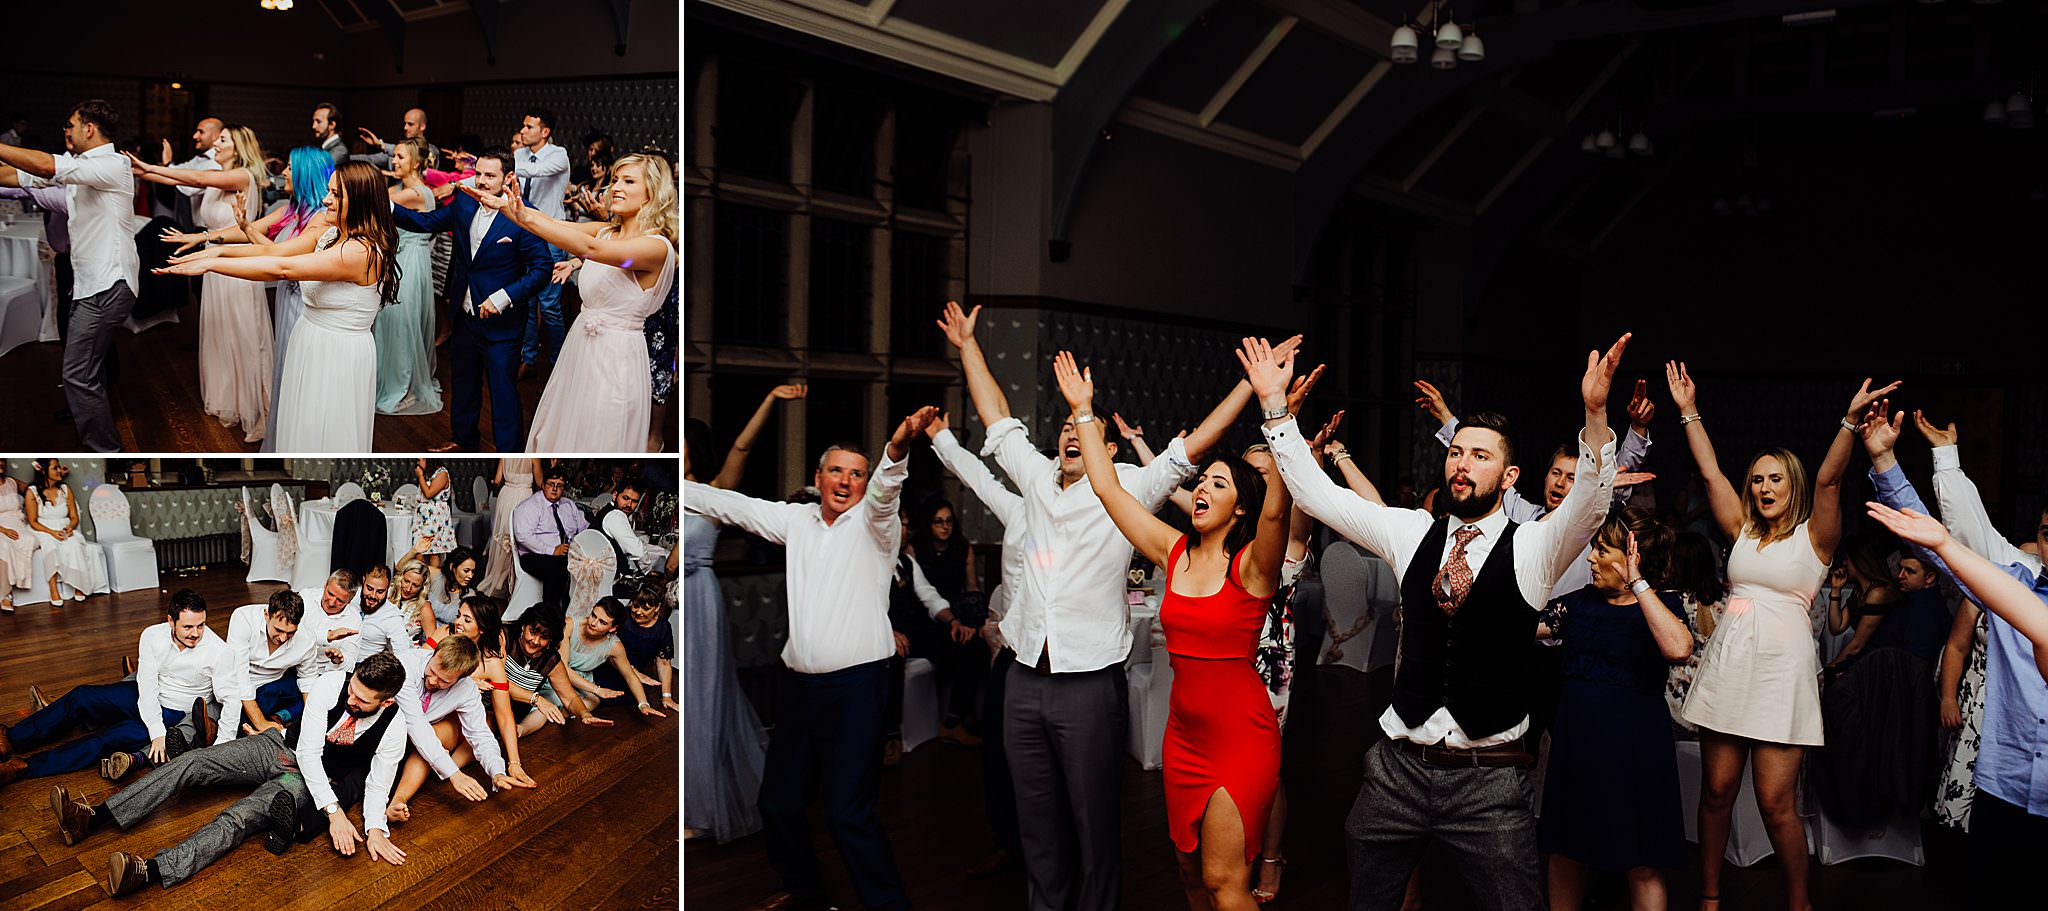 Wedding guests dancing to music at a wedding reception evening do at Gregnog Hall